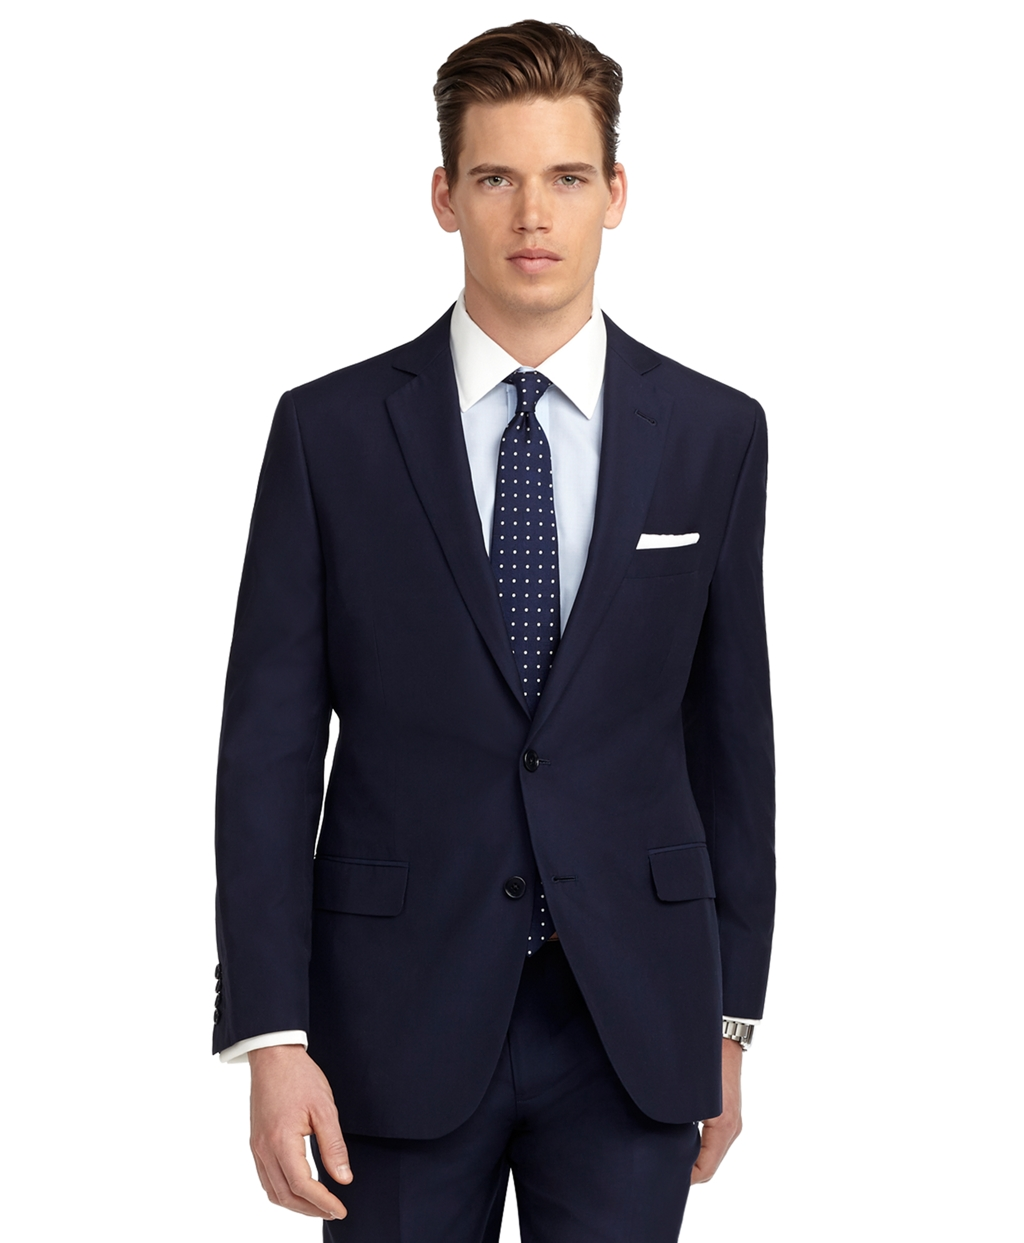 brooks brothers navy fitzgerald fit solid navy suit product 1 7371183 198329363